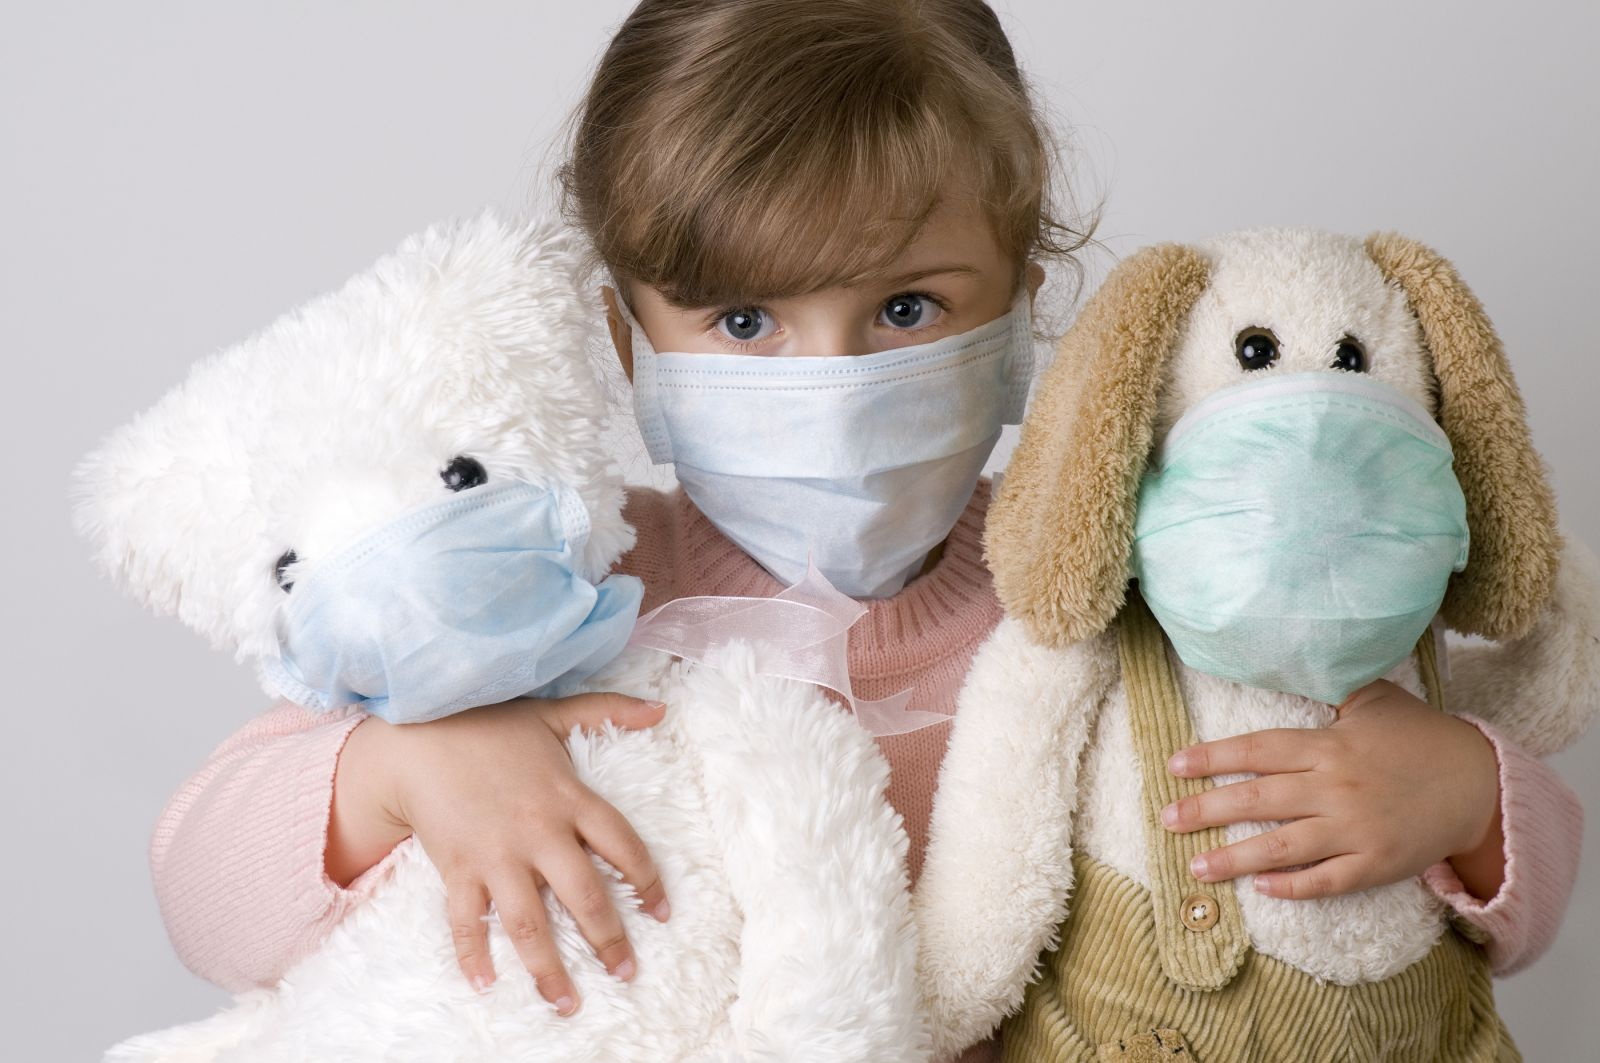 How Does Poor Indoor Air Quality Affect Our Health?